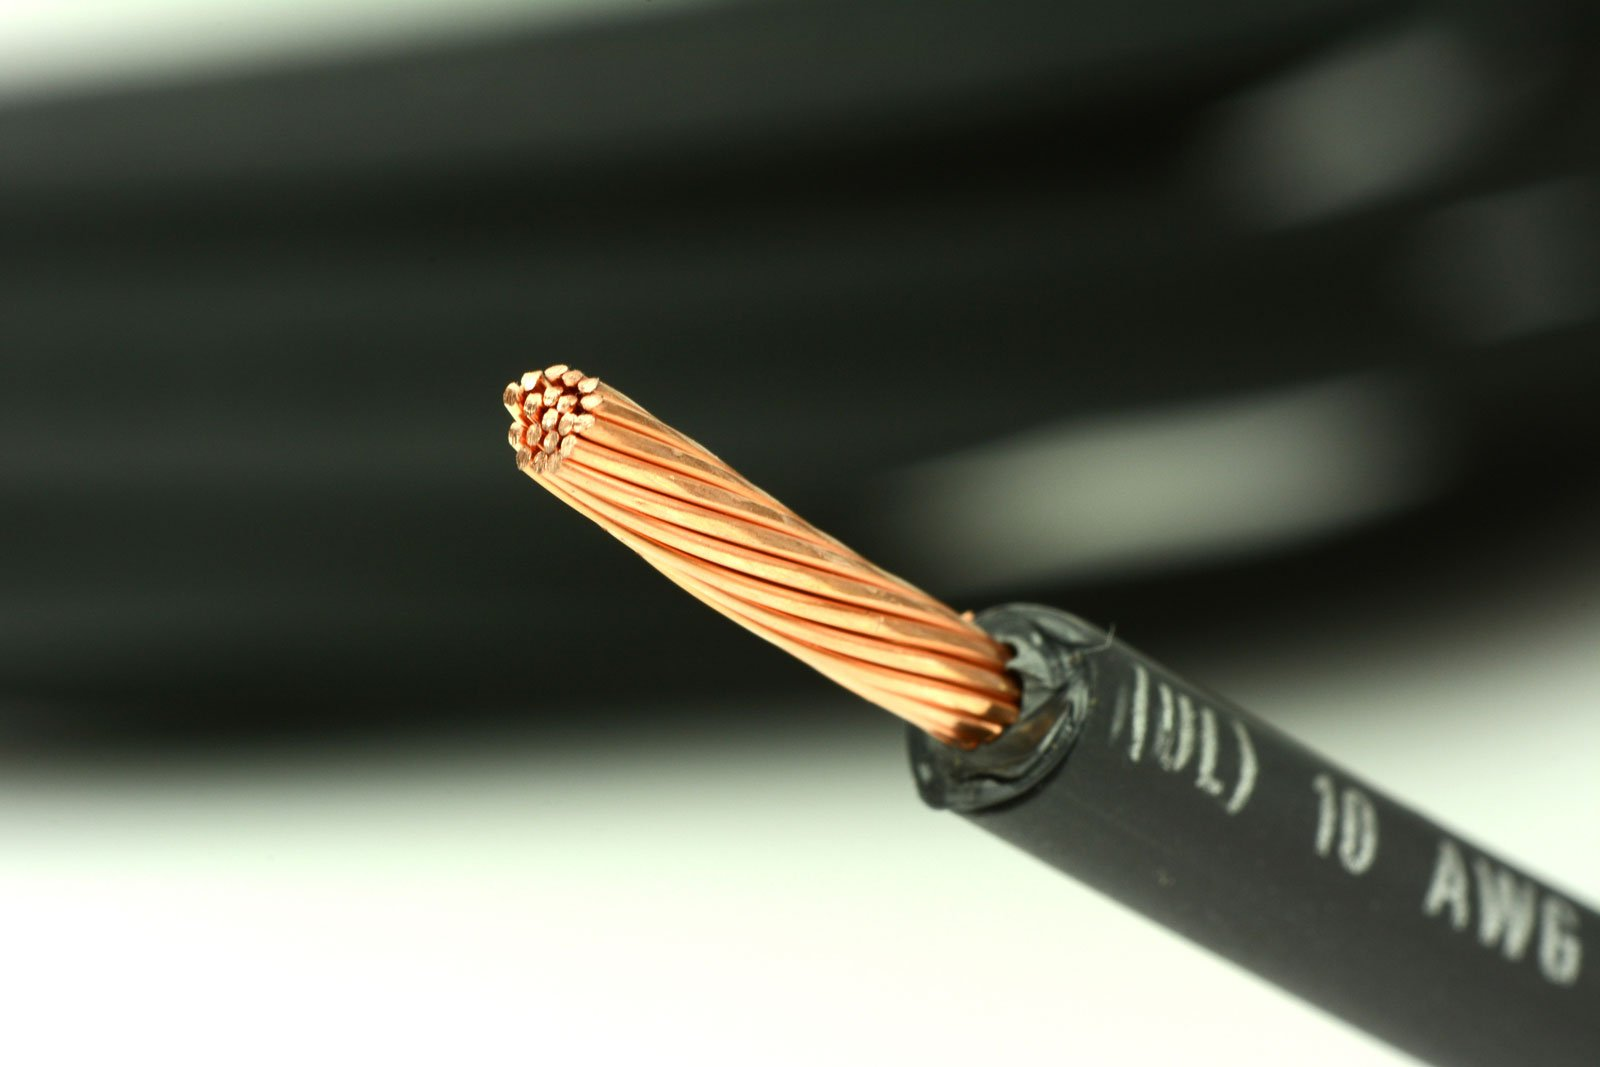 Temco 10 AWG Solar Panel Wire 250' Power Cable Black UL 4703 Copper Made in USA PV Gauge by Temco (Image #2)